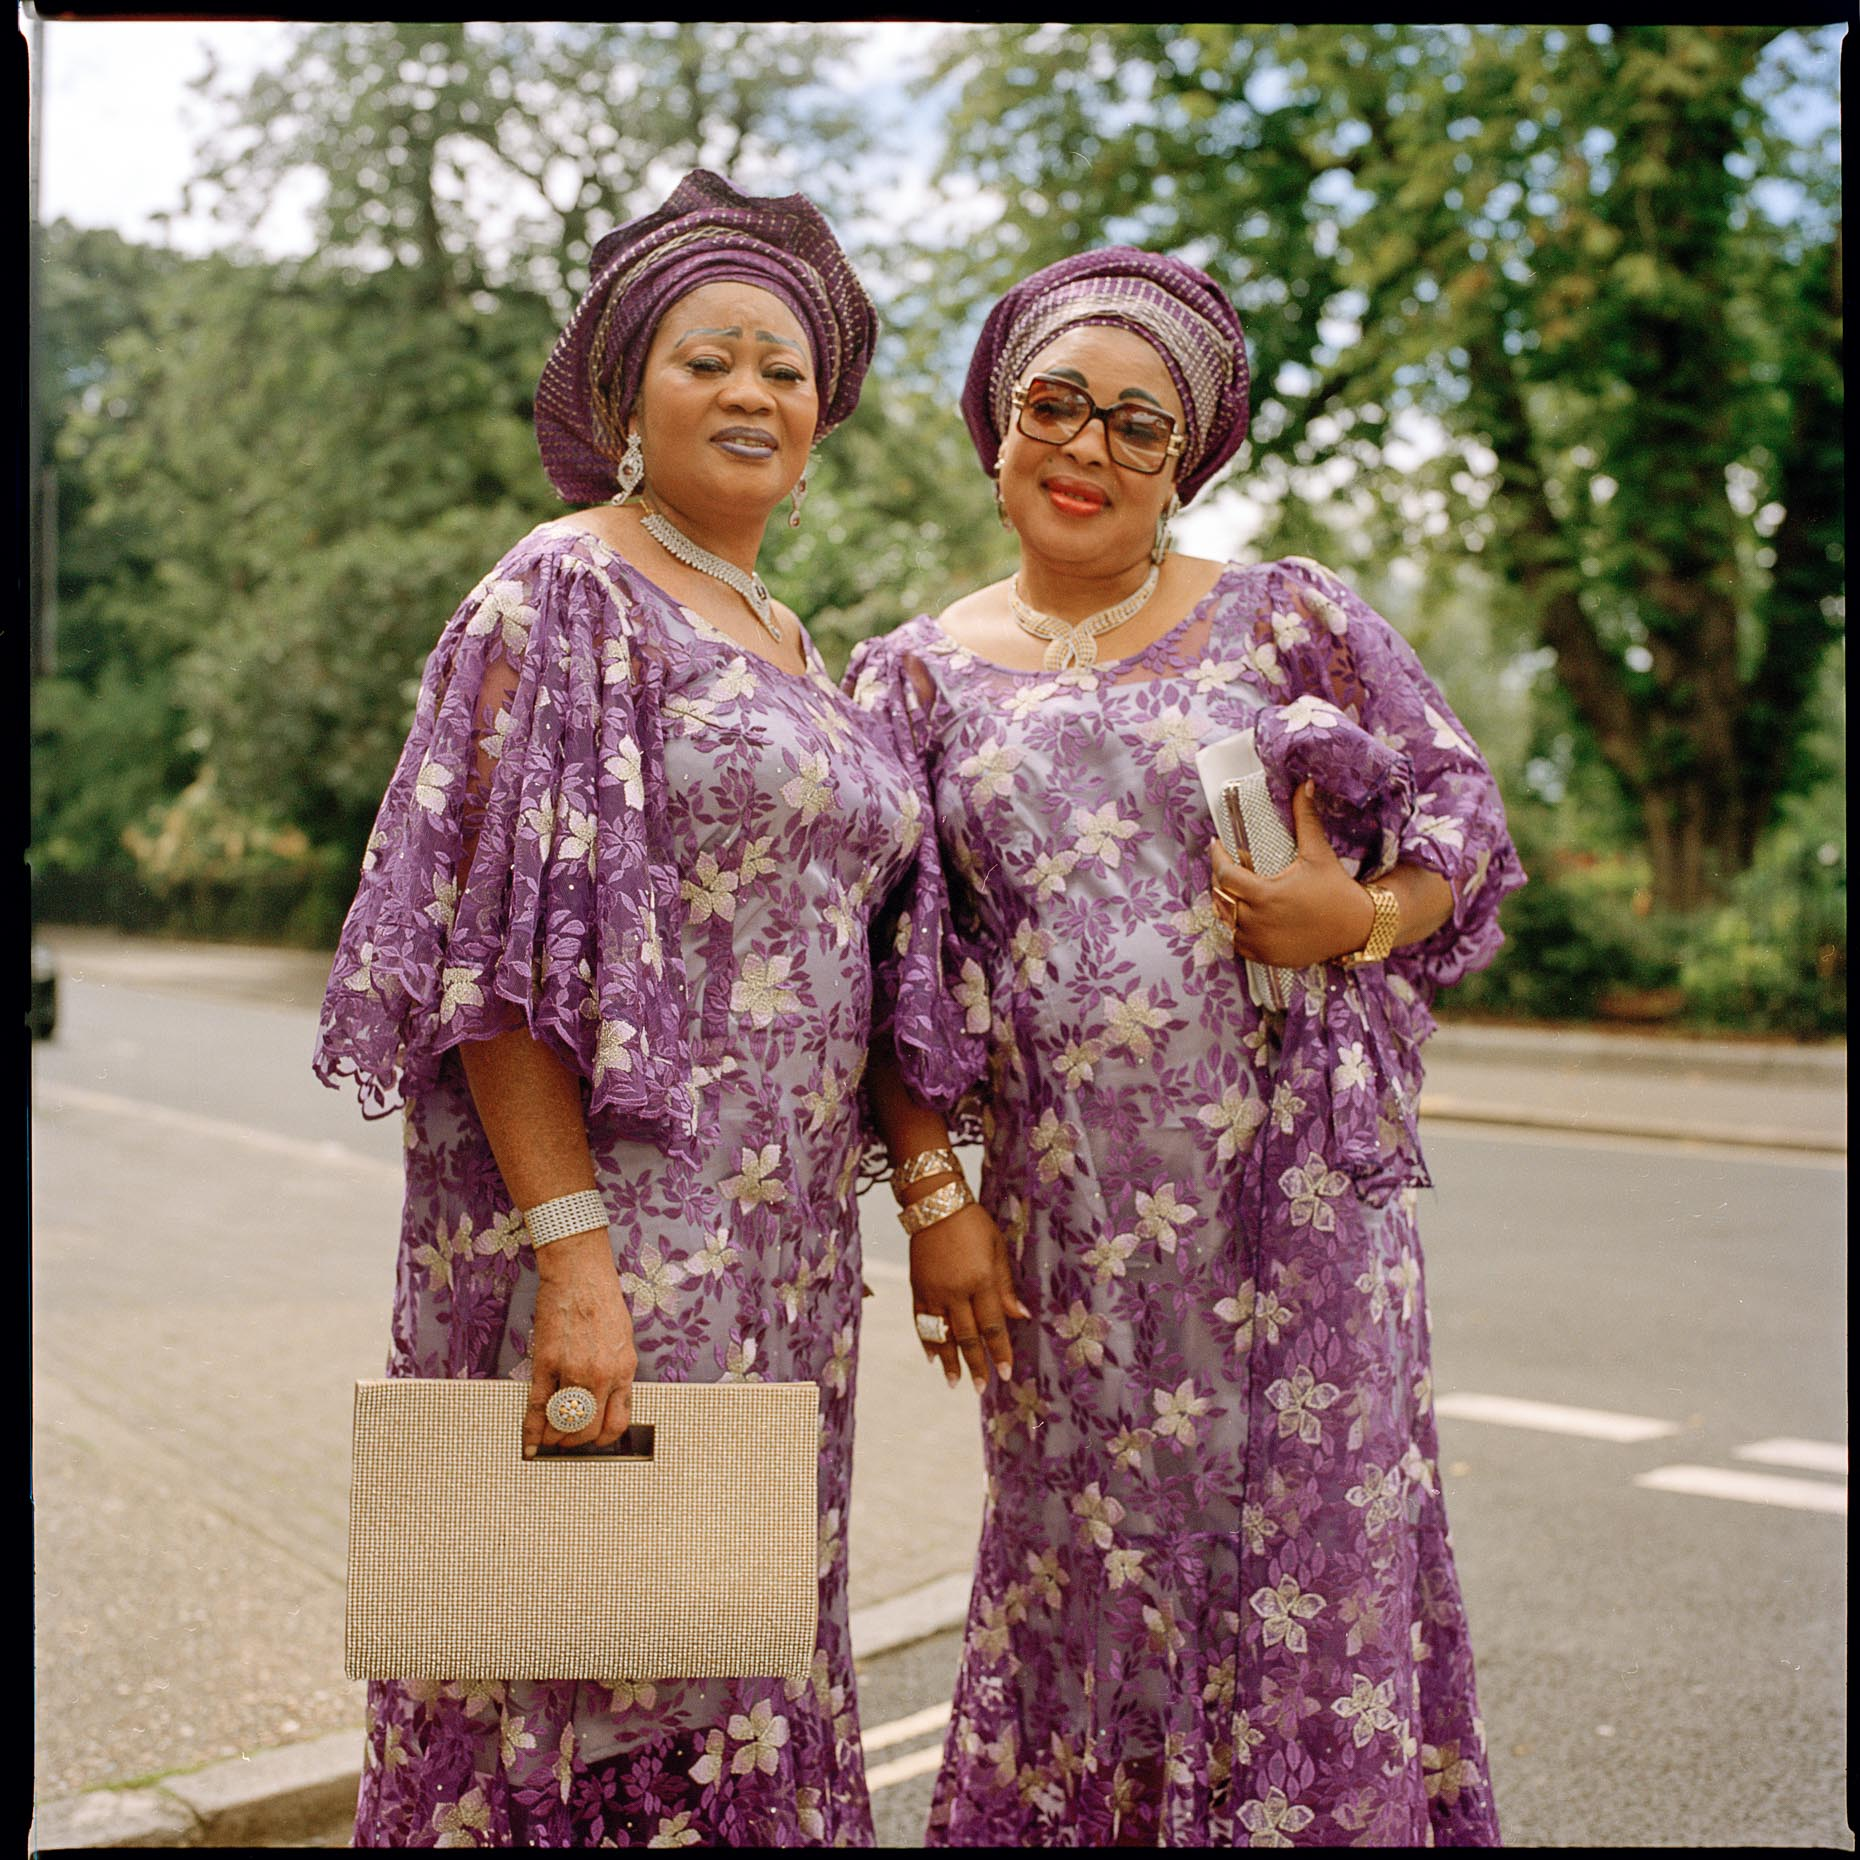 Two Ghanian ladies on their way to a wedding , Clissold Park in  Stoke Newington London.